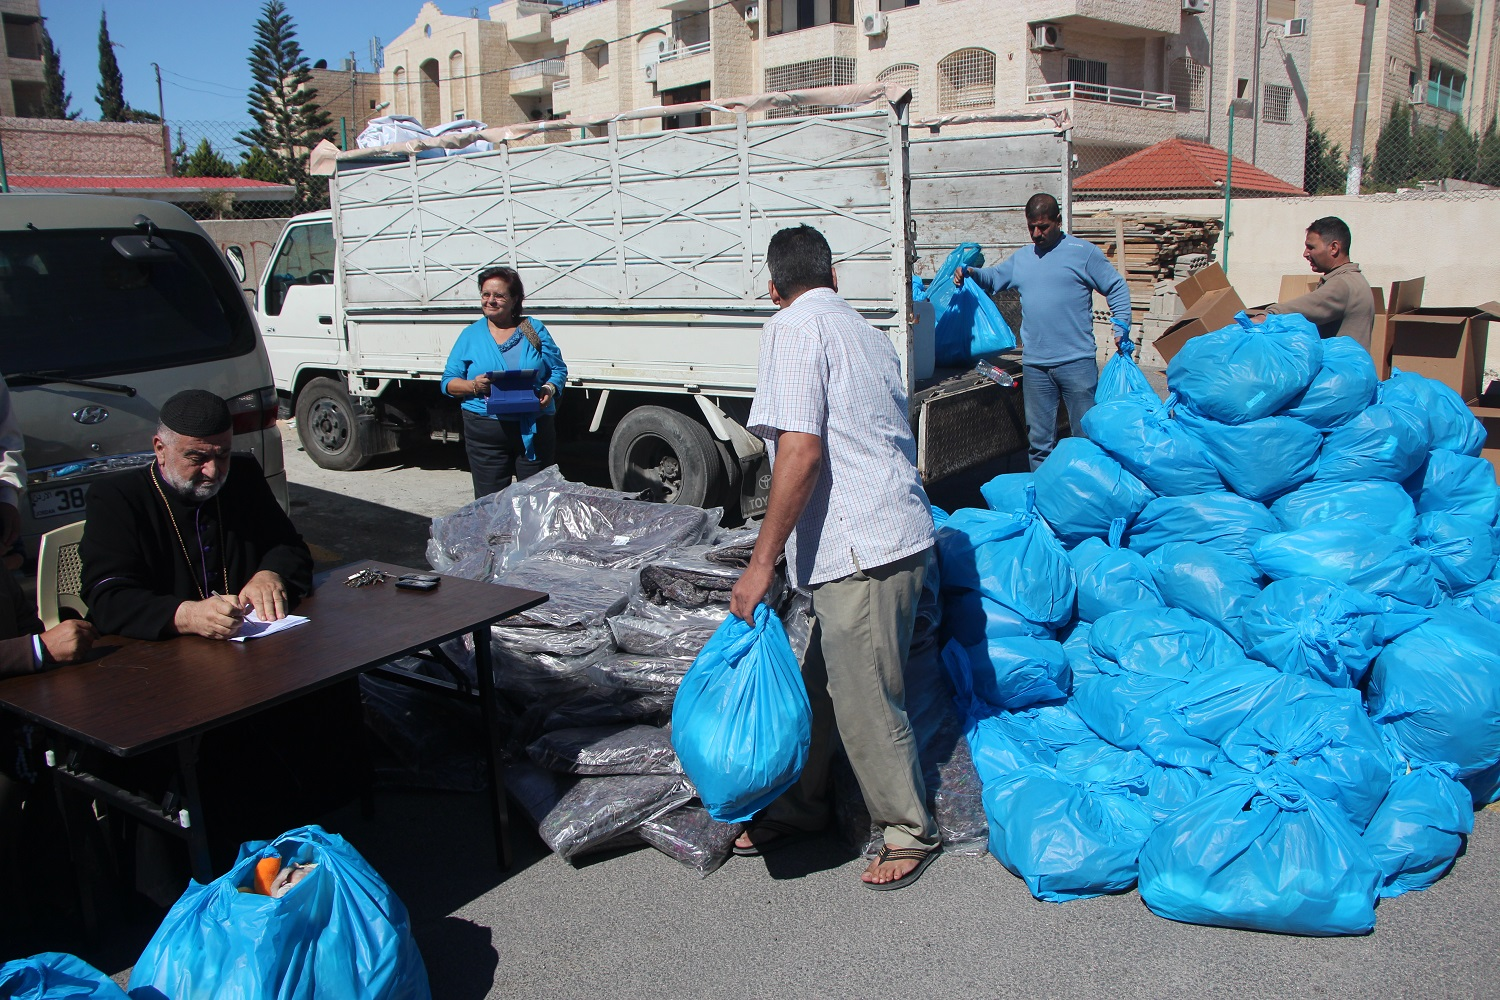 Good360 Donations Provide Hope to Thousands of Refugees in the Middle East